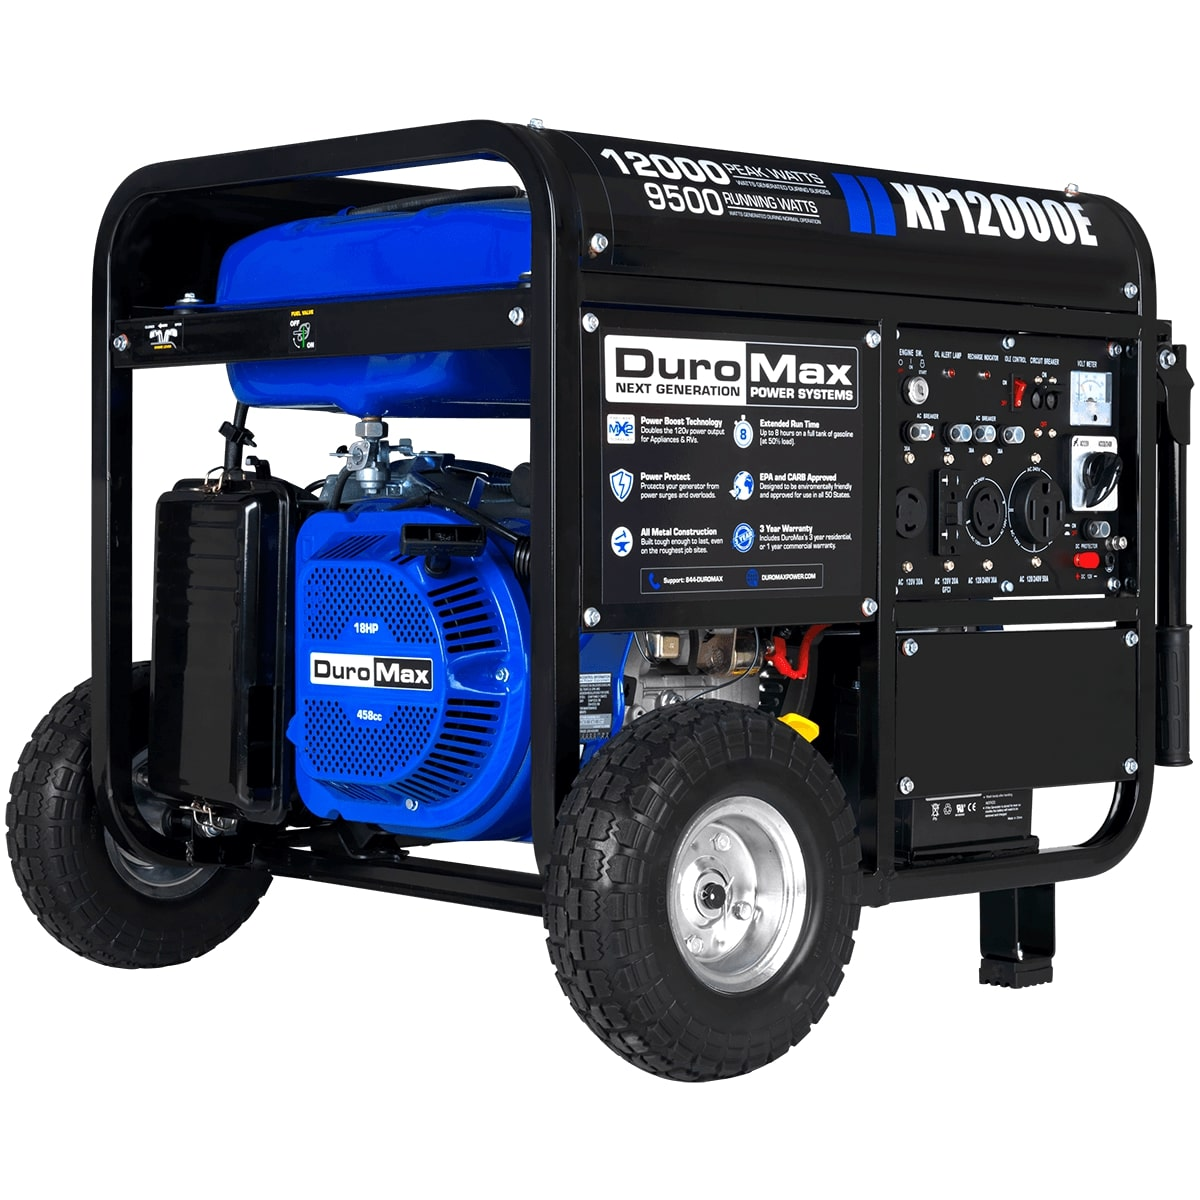 duromax xp12000e 12000 watt portable gas electric start generator home standby ebay. Black Bedroom Furniture Sets. Home Design Ideas